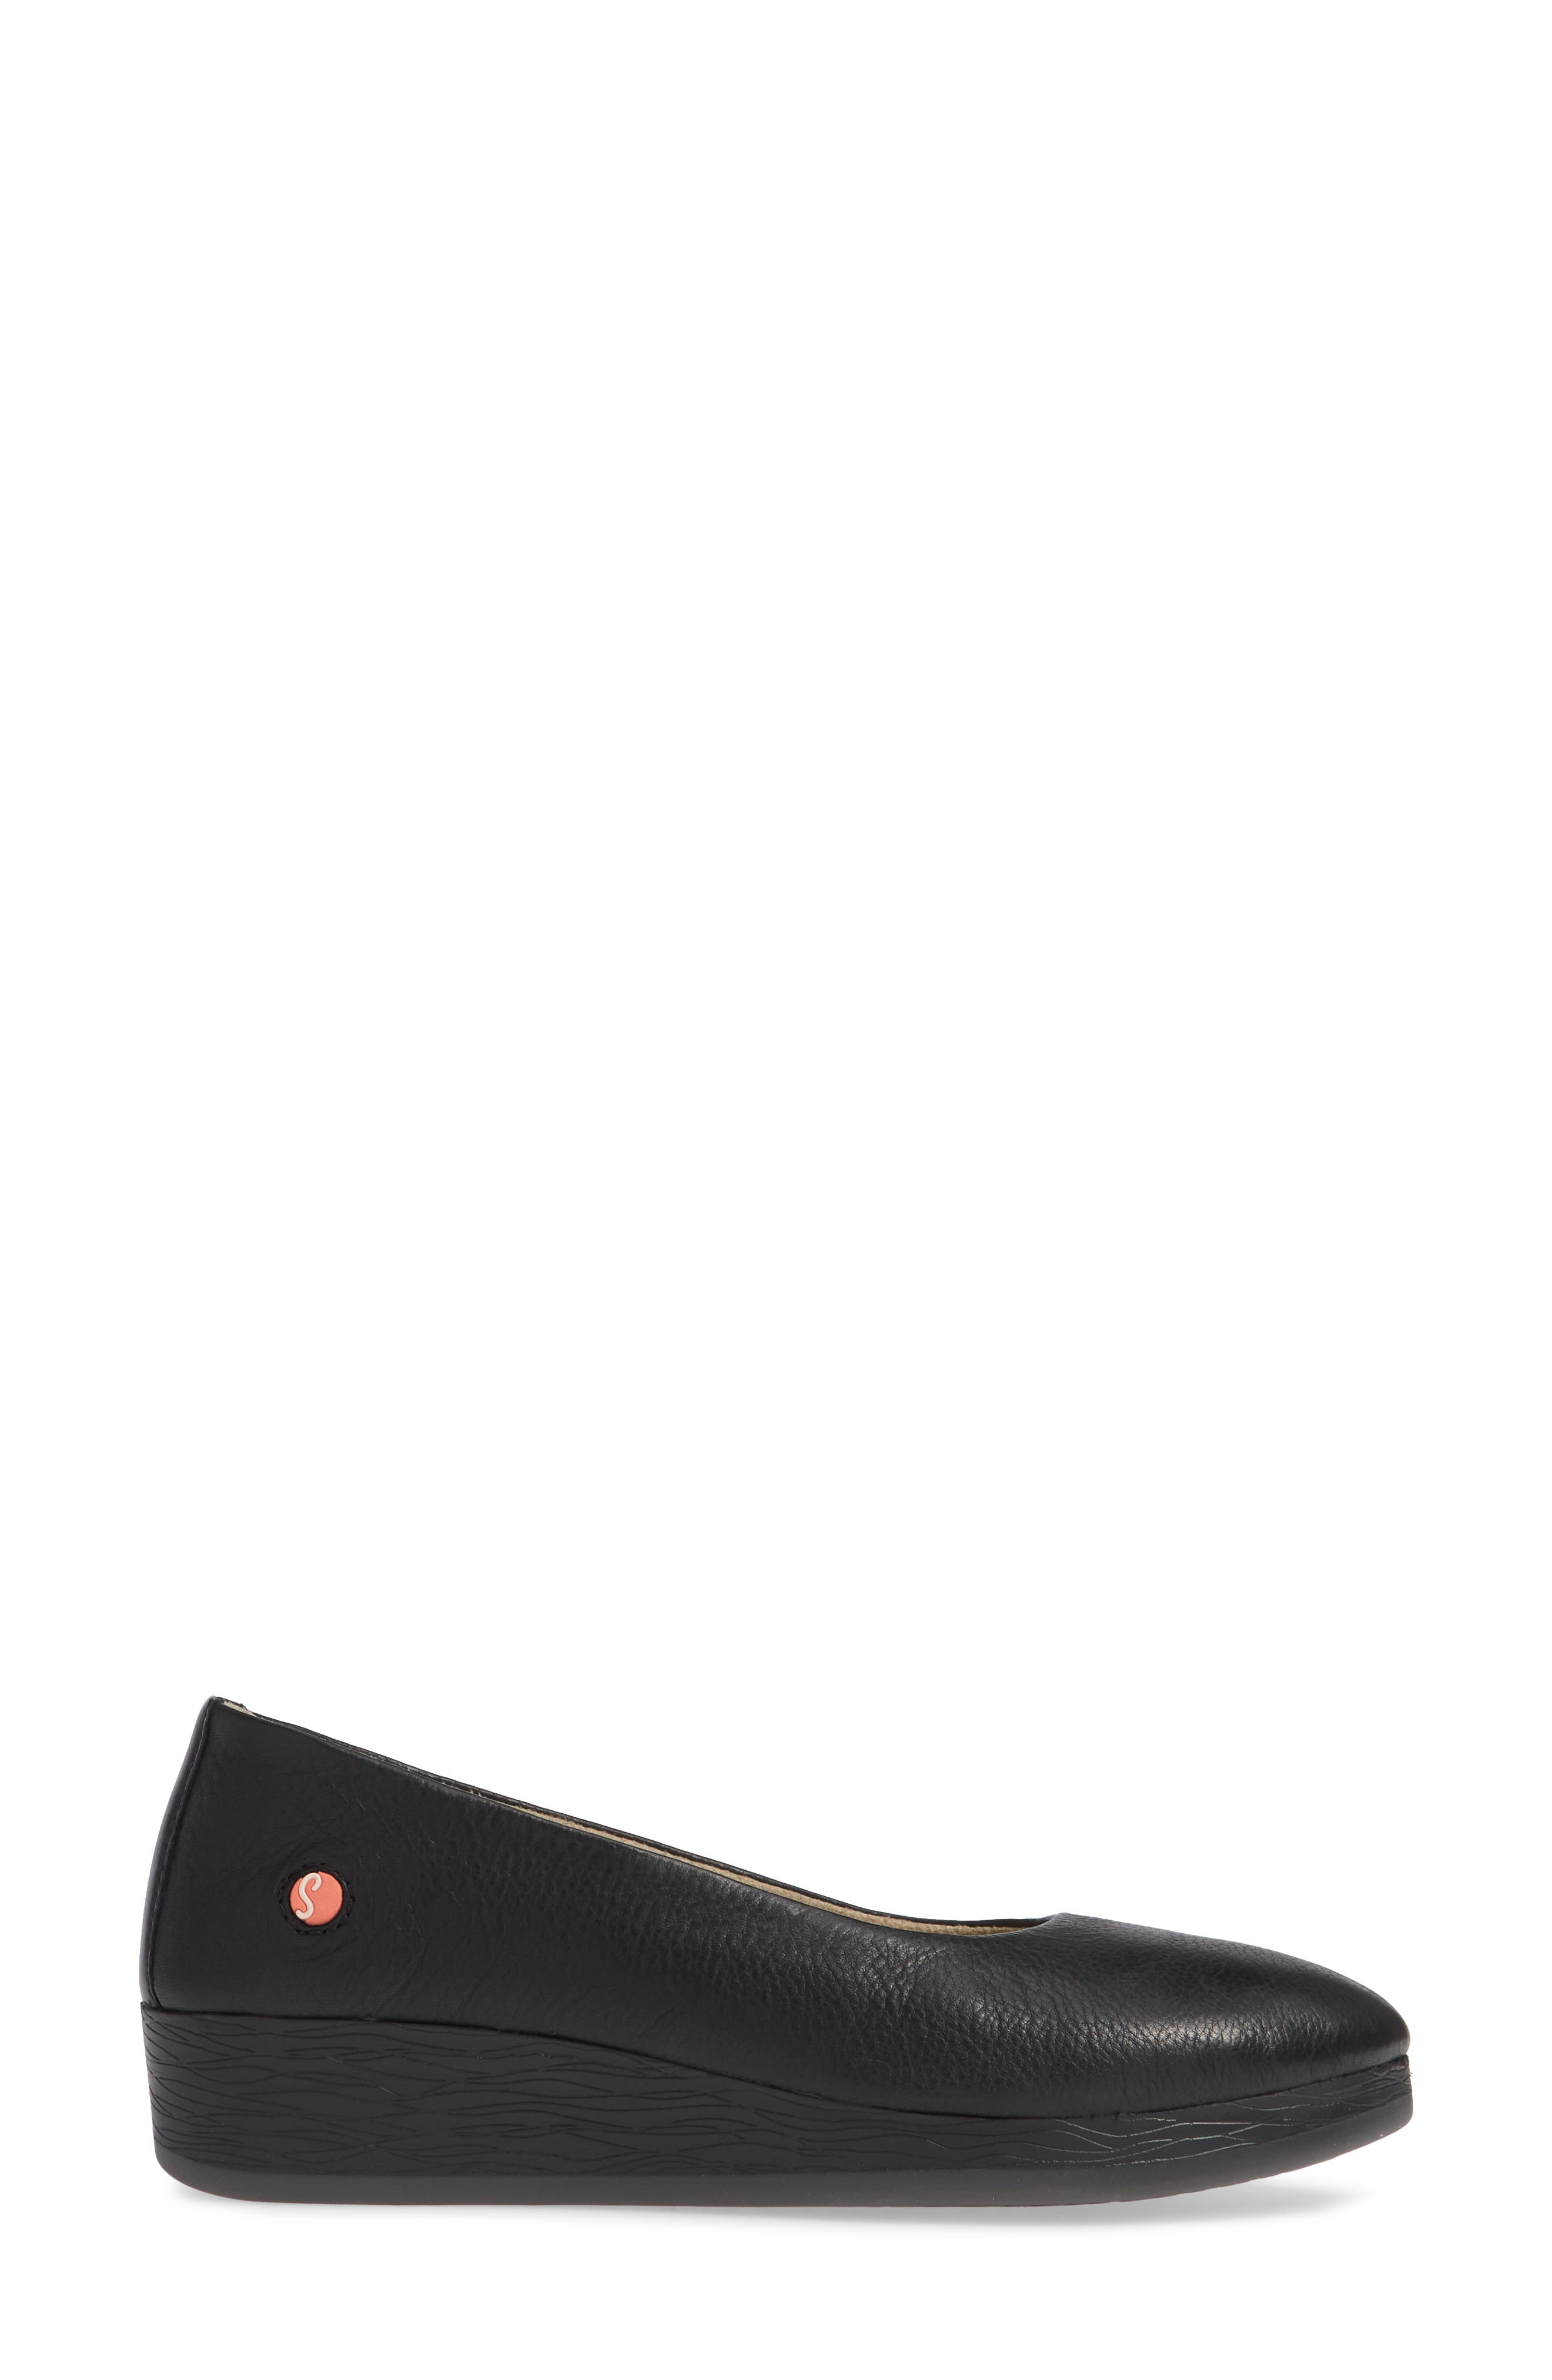 SOFTINOS BY FLY LONDON, Asa Soft Flat, Alternate thumbnail 3, color, BLACK SMOOTH LEATHER